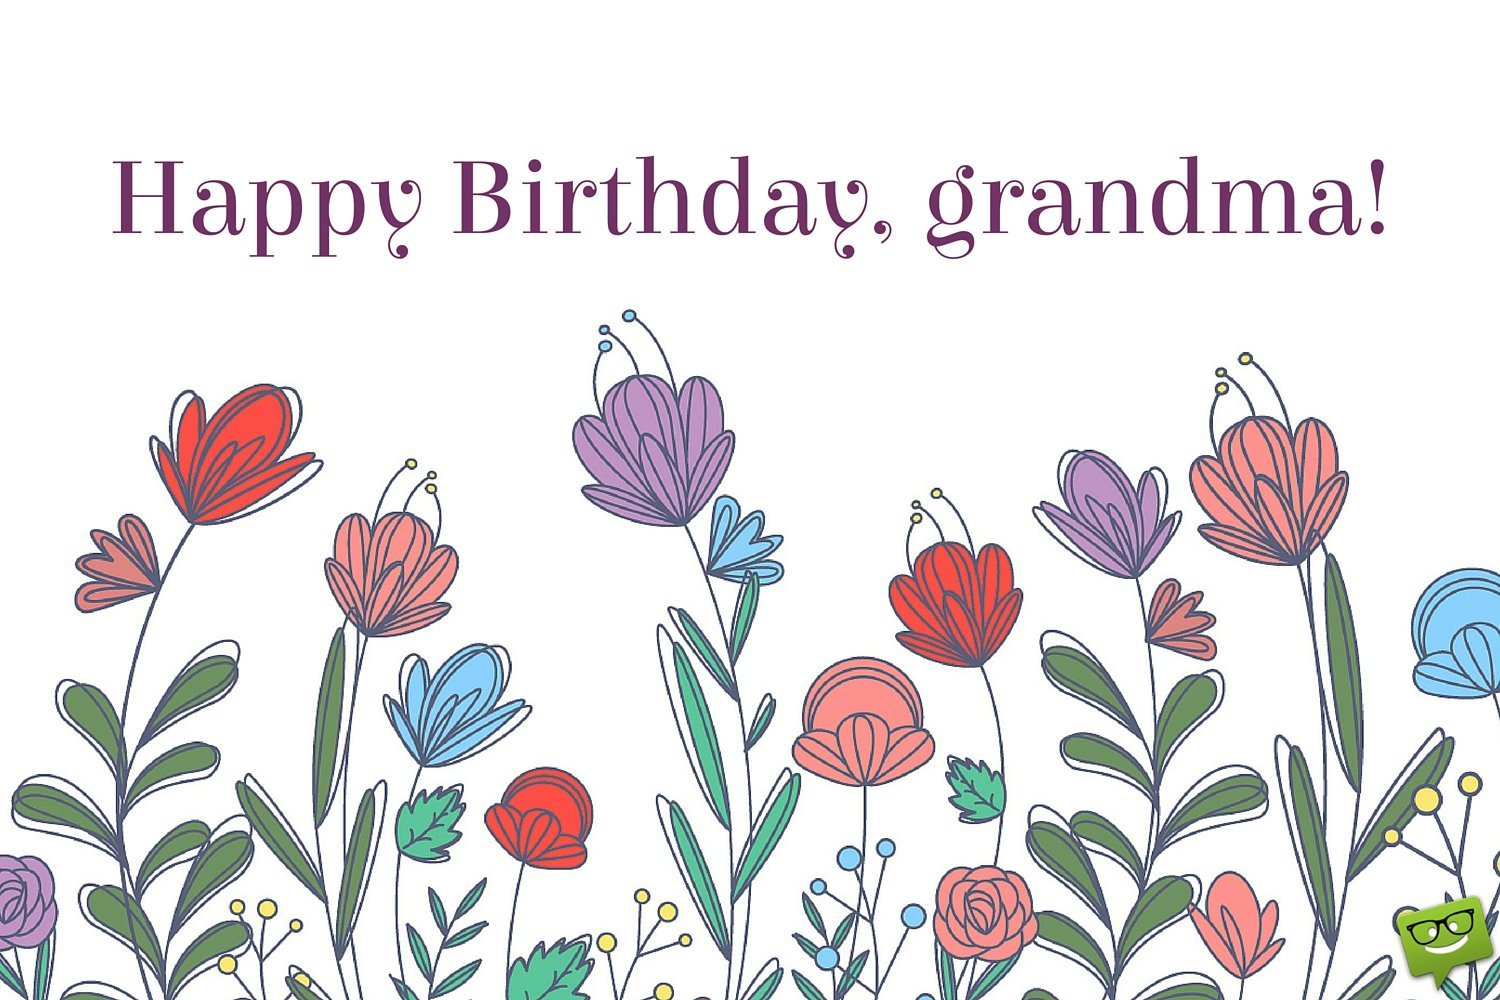 Happy Birthday Grandma On Image Of Cute Spring Flowers